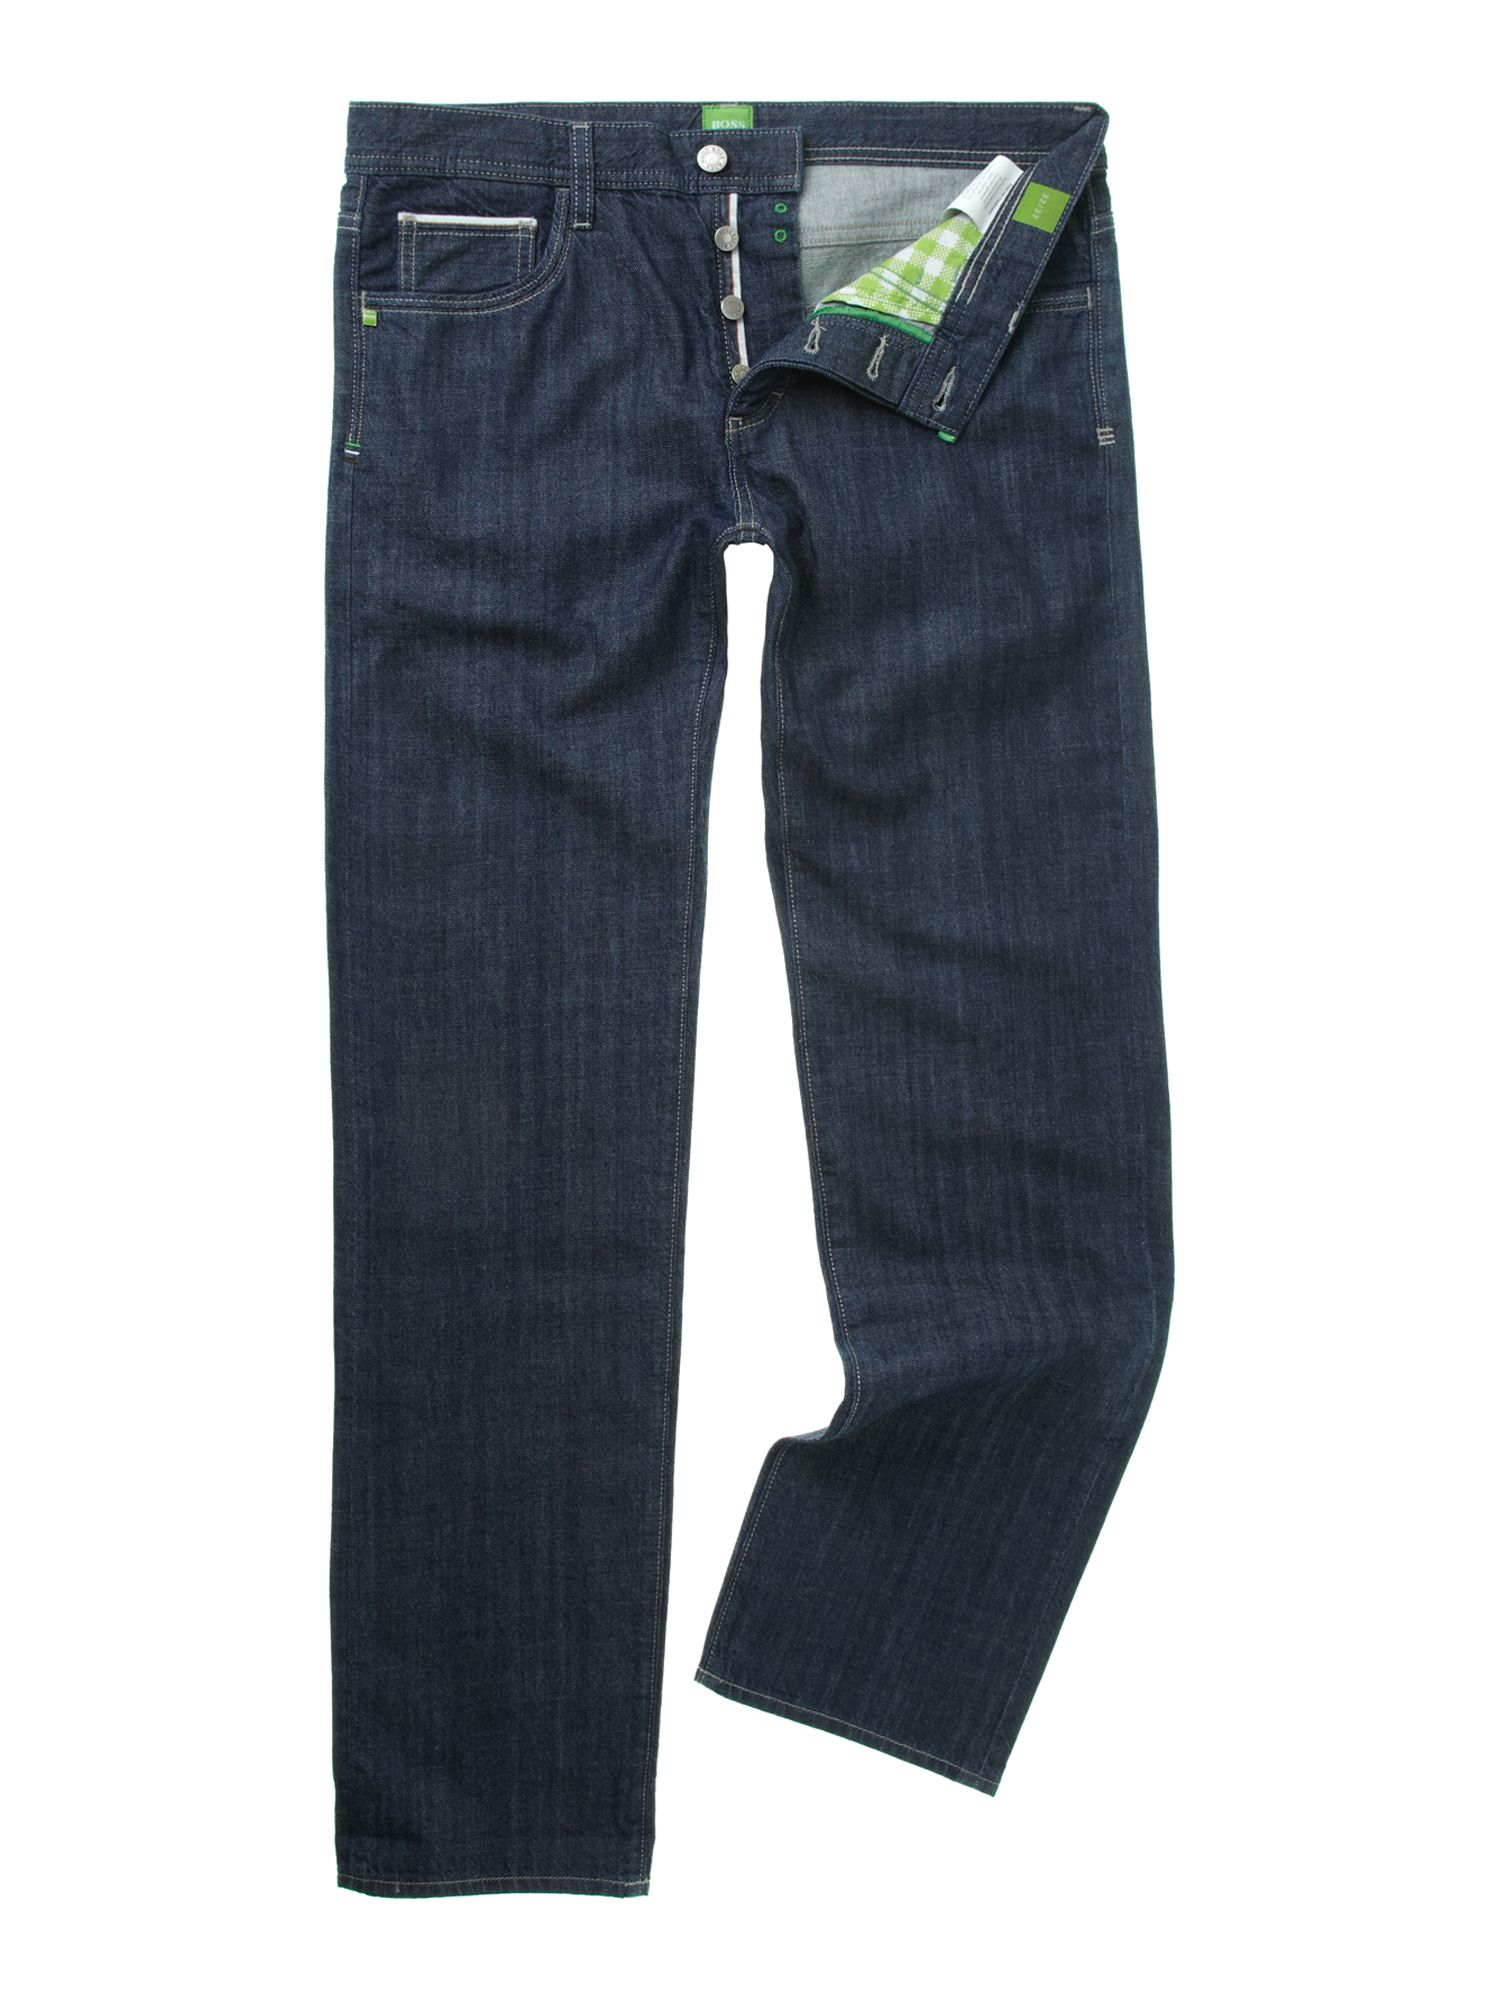 Danox tapered mid wash jeans